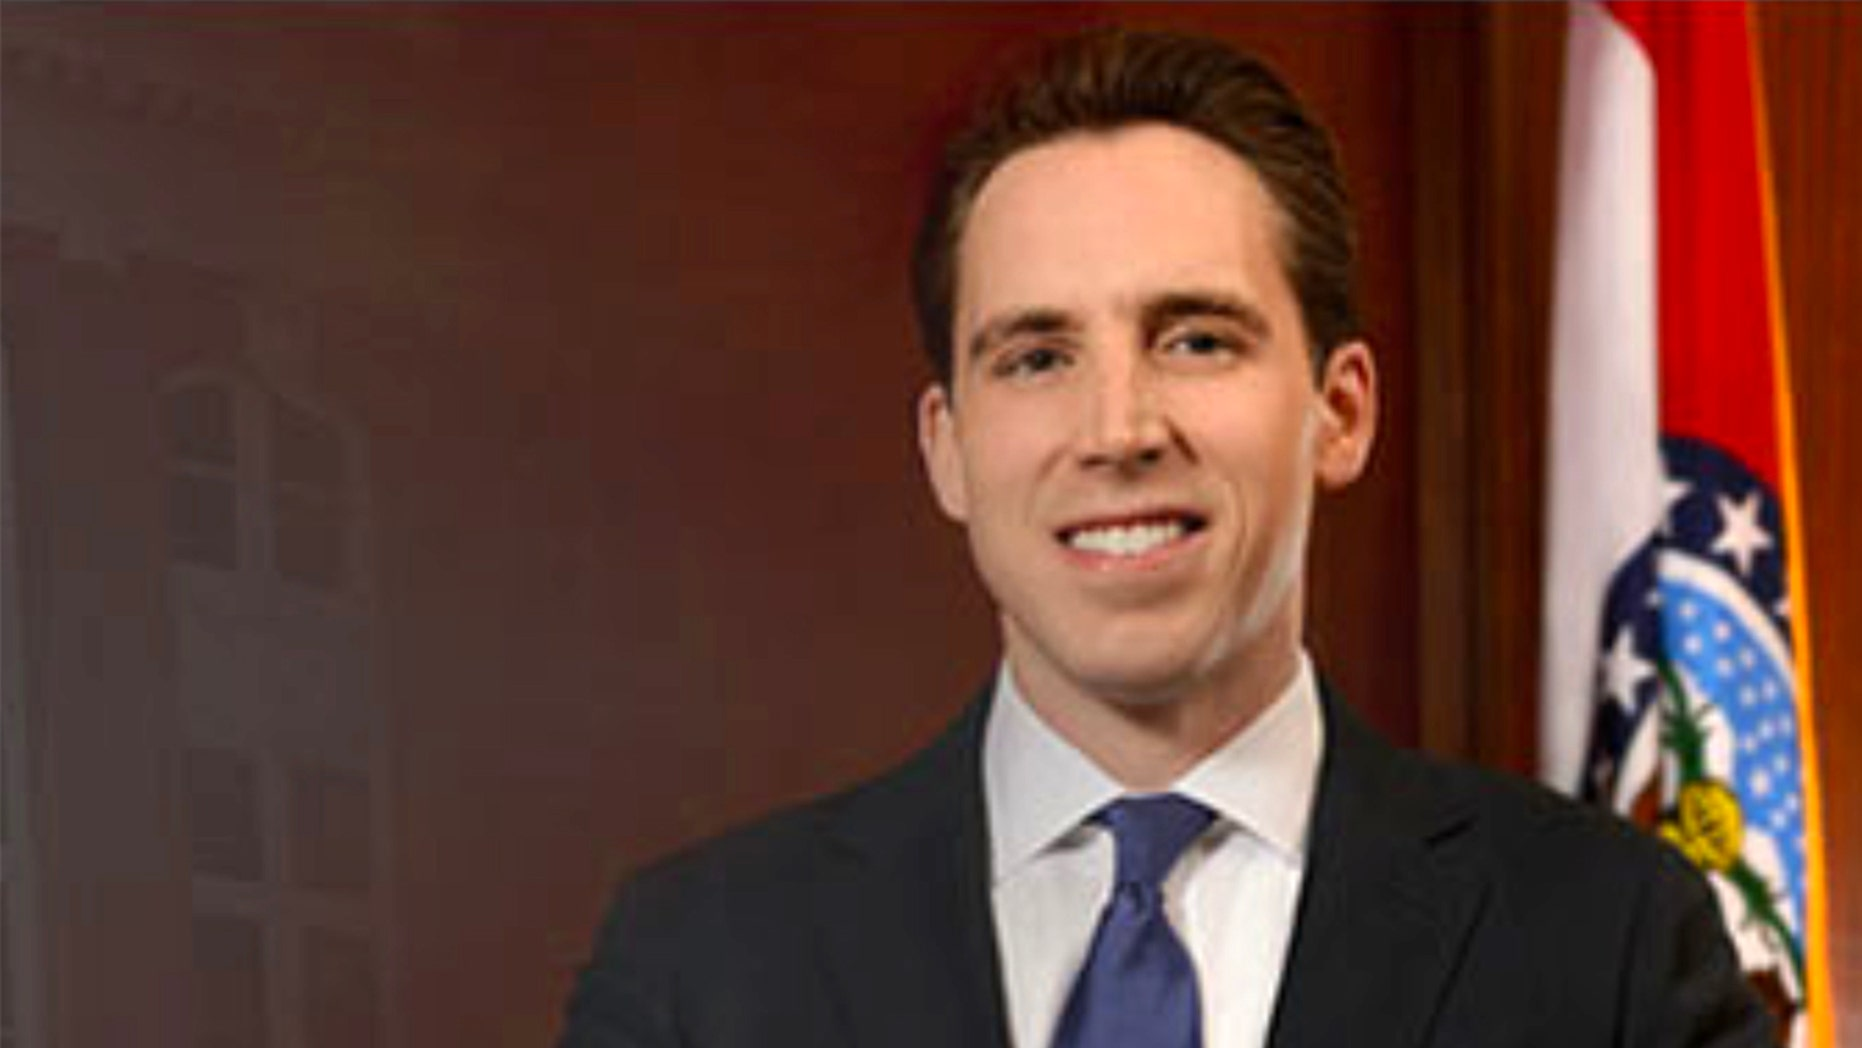 Missouri Attorney General Josh Hawley has been accused of misusing state resources in his successful U.S. Senate race this year.